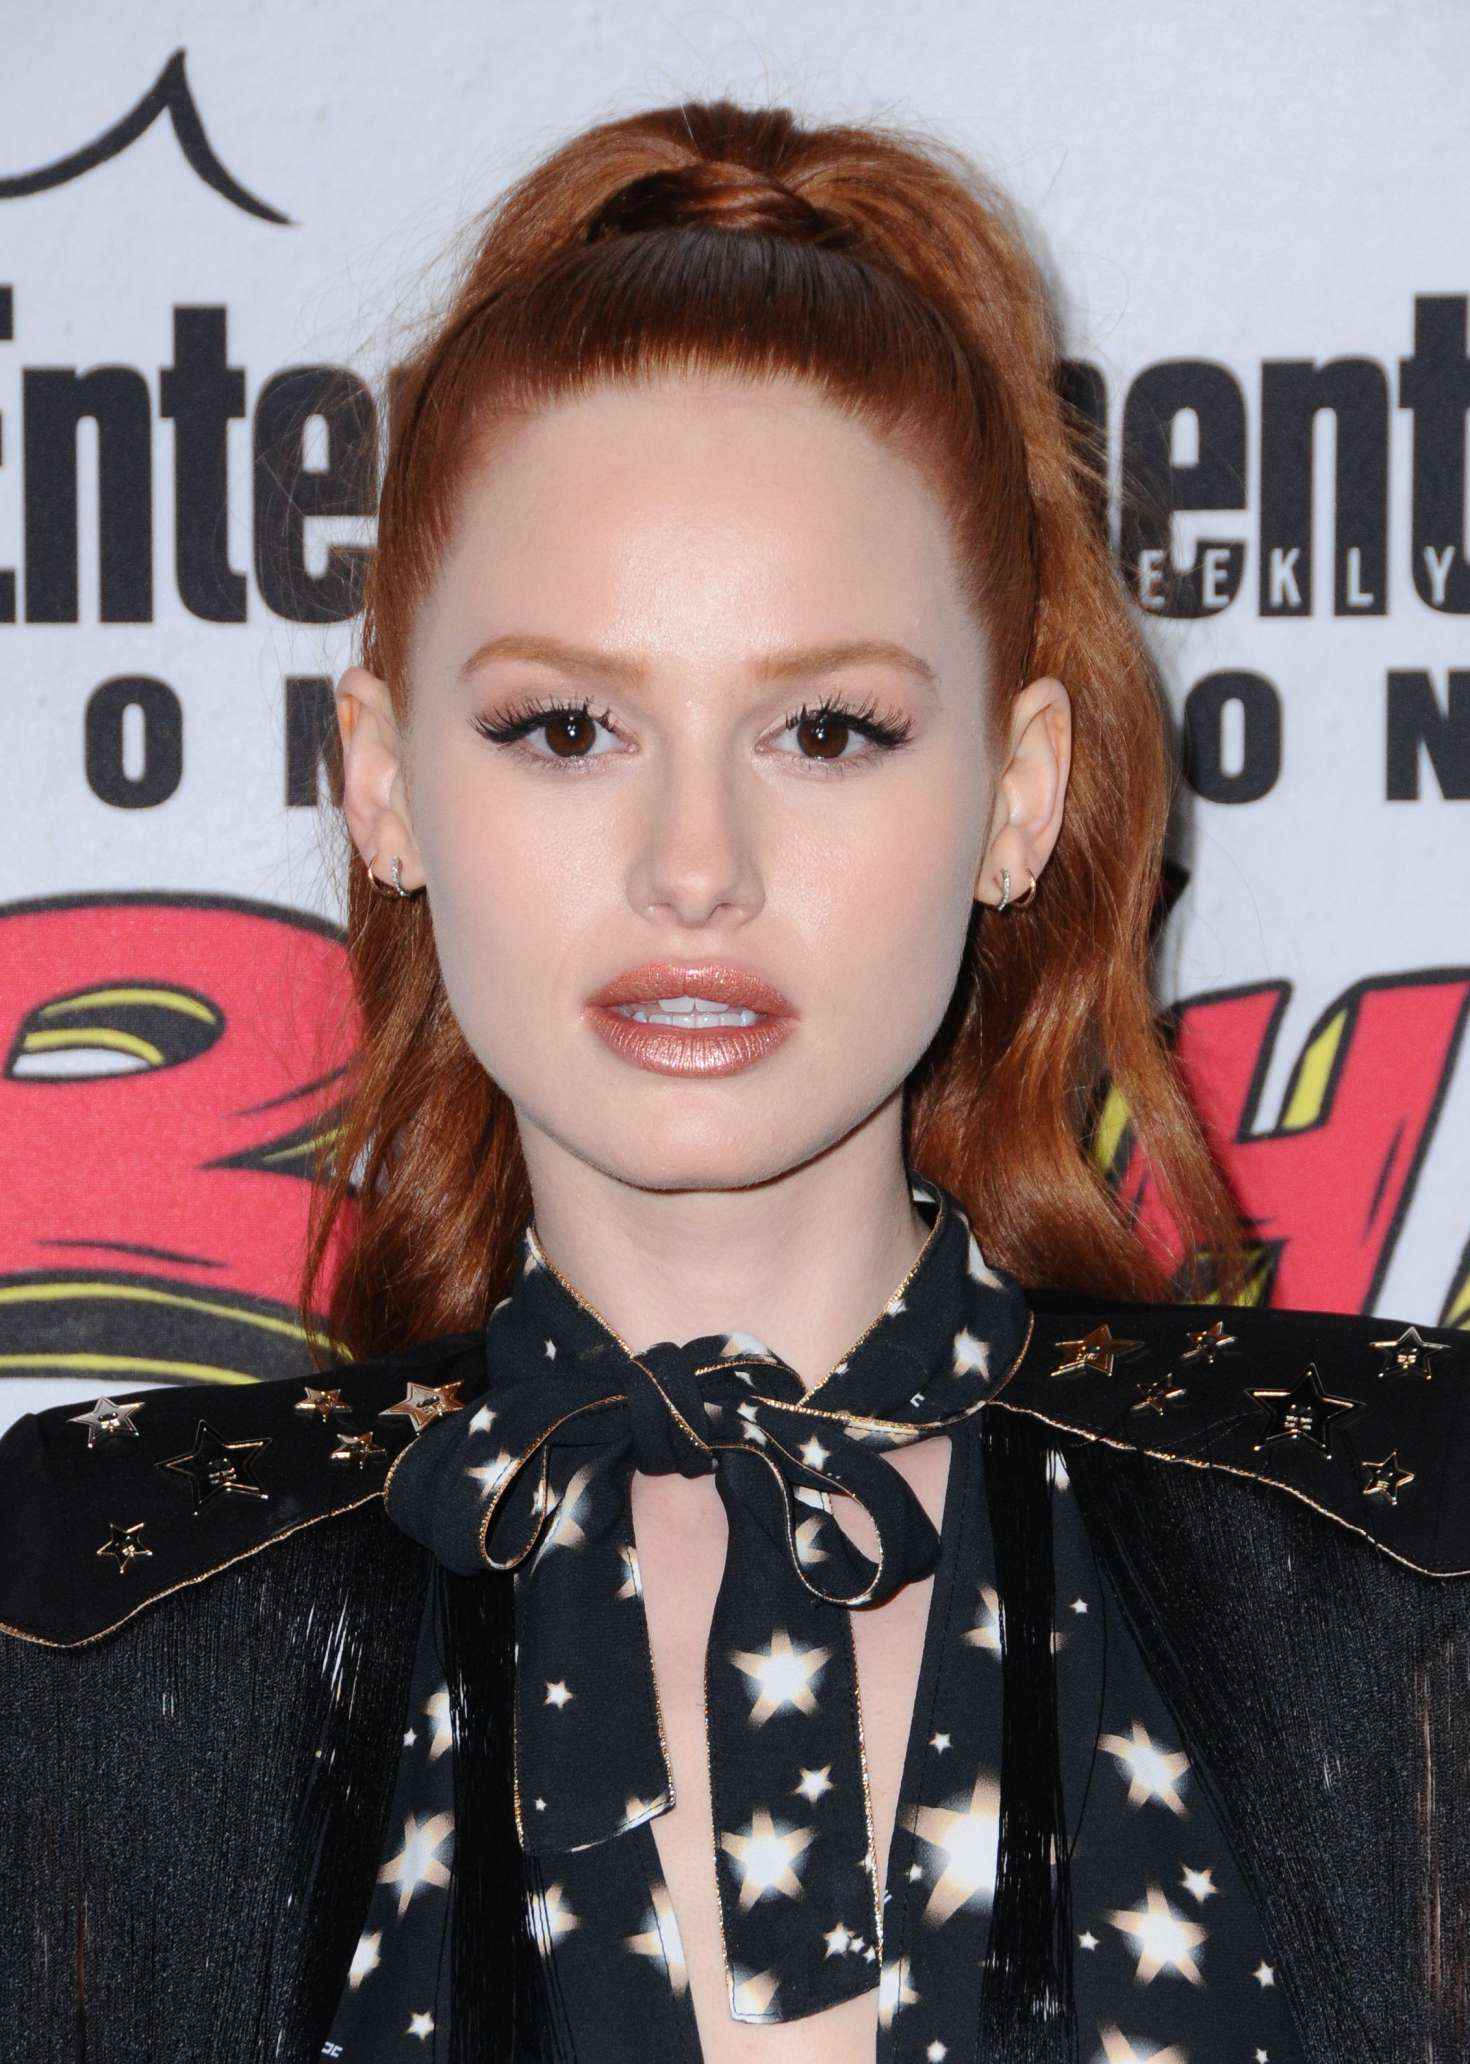 Madelaine Petsch 2017 : Madelaine Petsch: Entertainment Weekly Party at 2017 Comic-Con -07